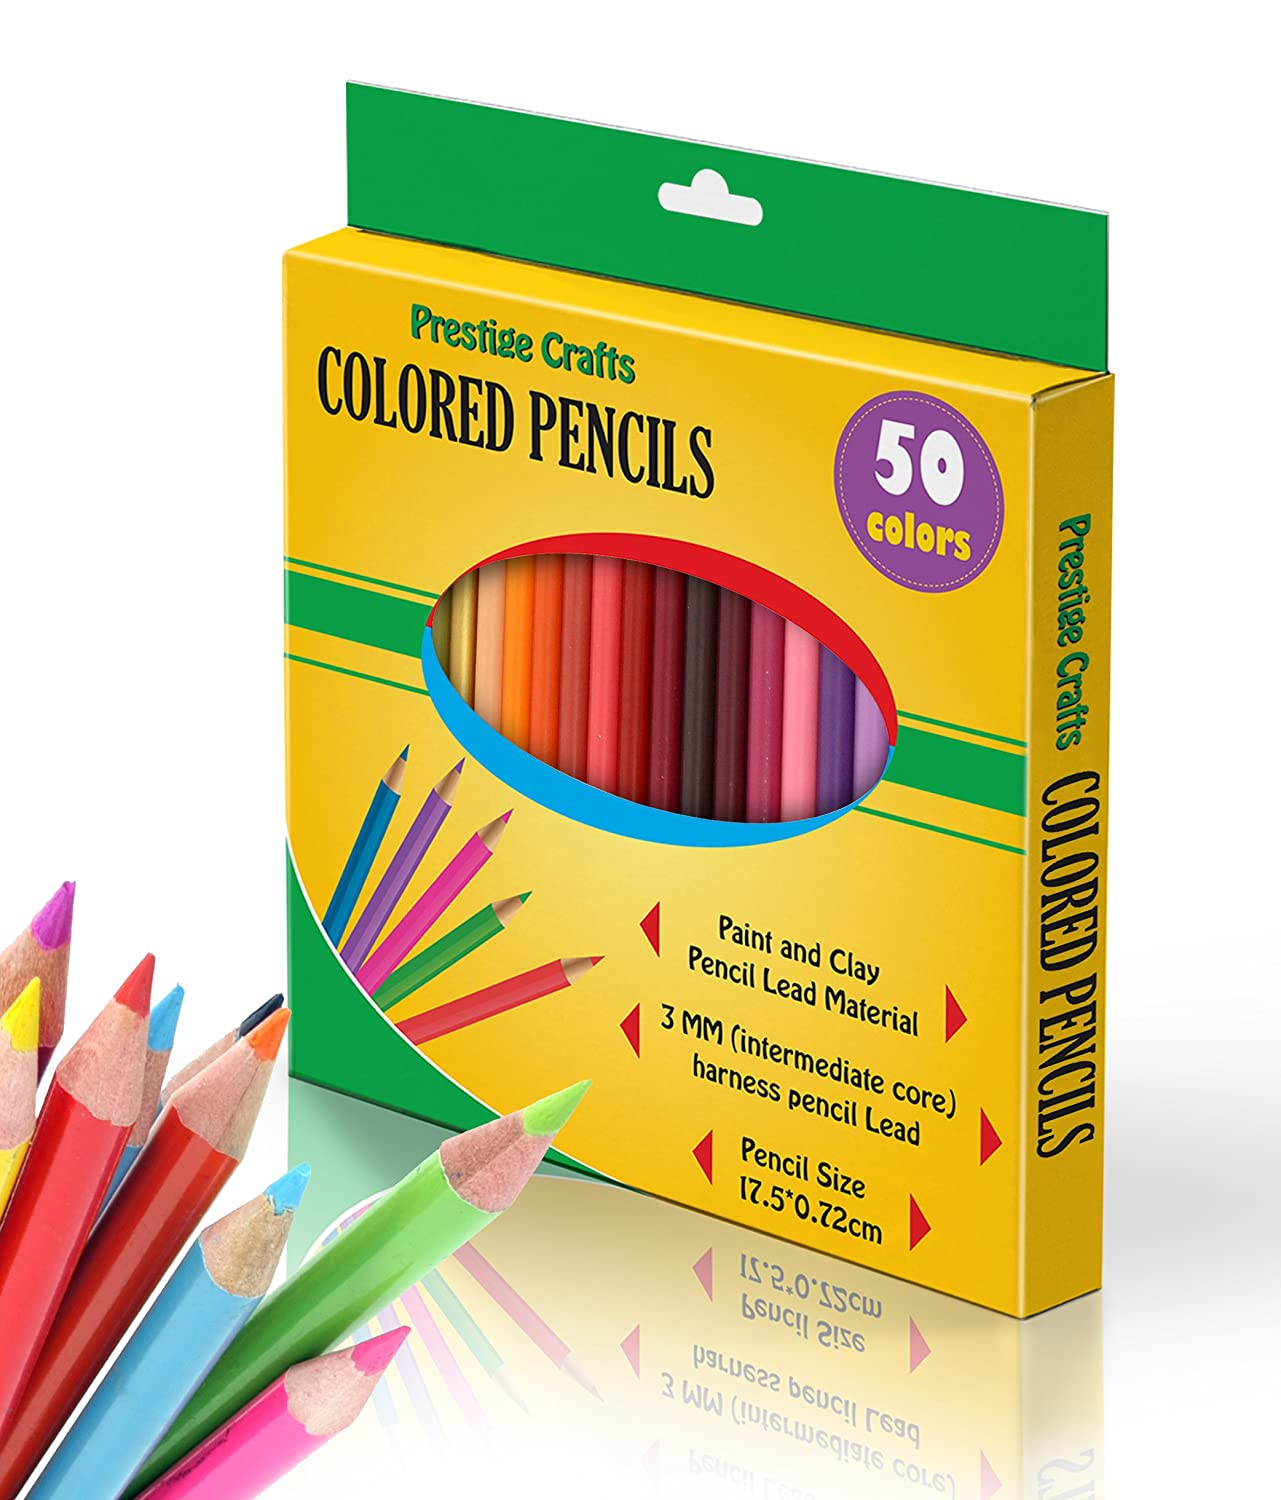 Amazing Colored Pencils Set, by Prestige Crafts! 50 Assorted Colors - Anti Break System - Easy to Erase Lead Material with 3MM Core - Perfect Gift for Adults and Kids - Order Risk Free